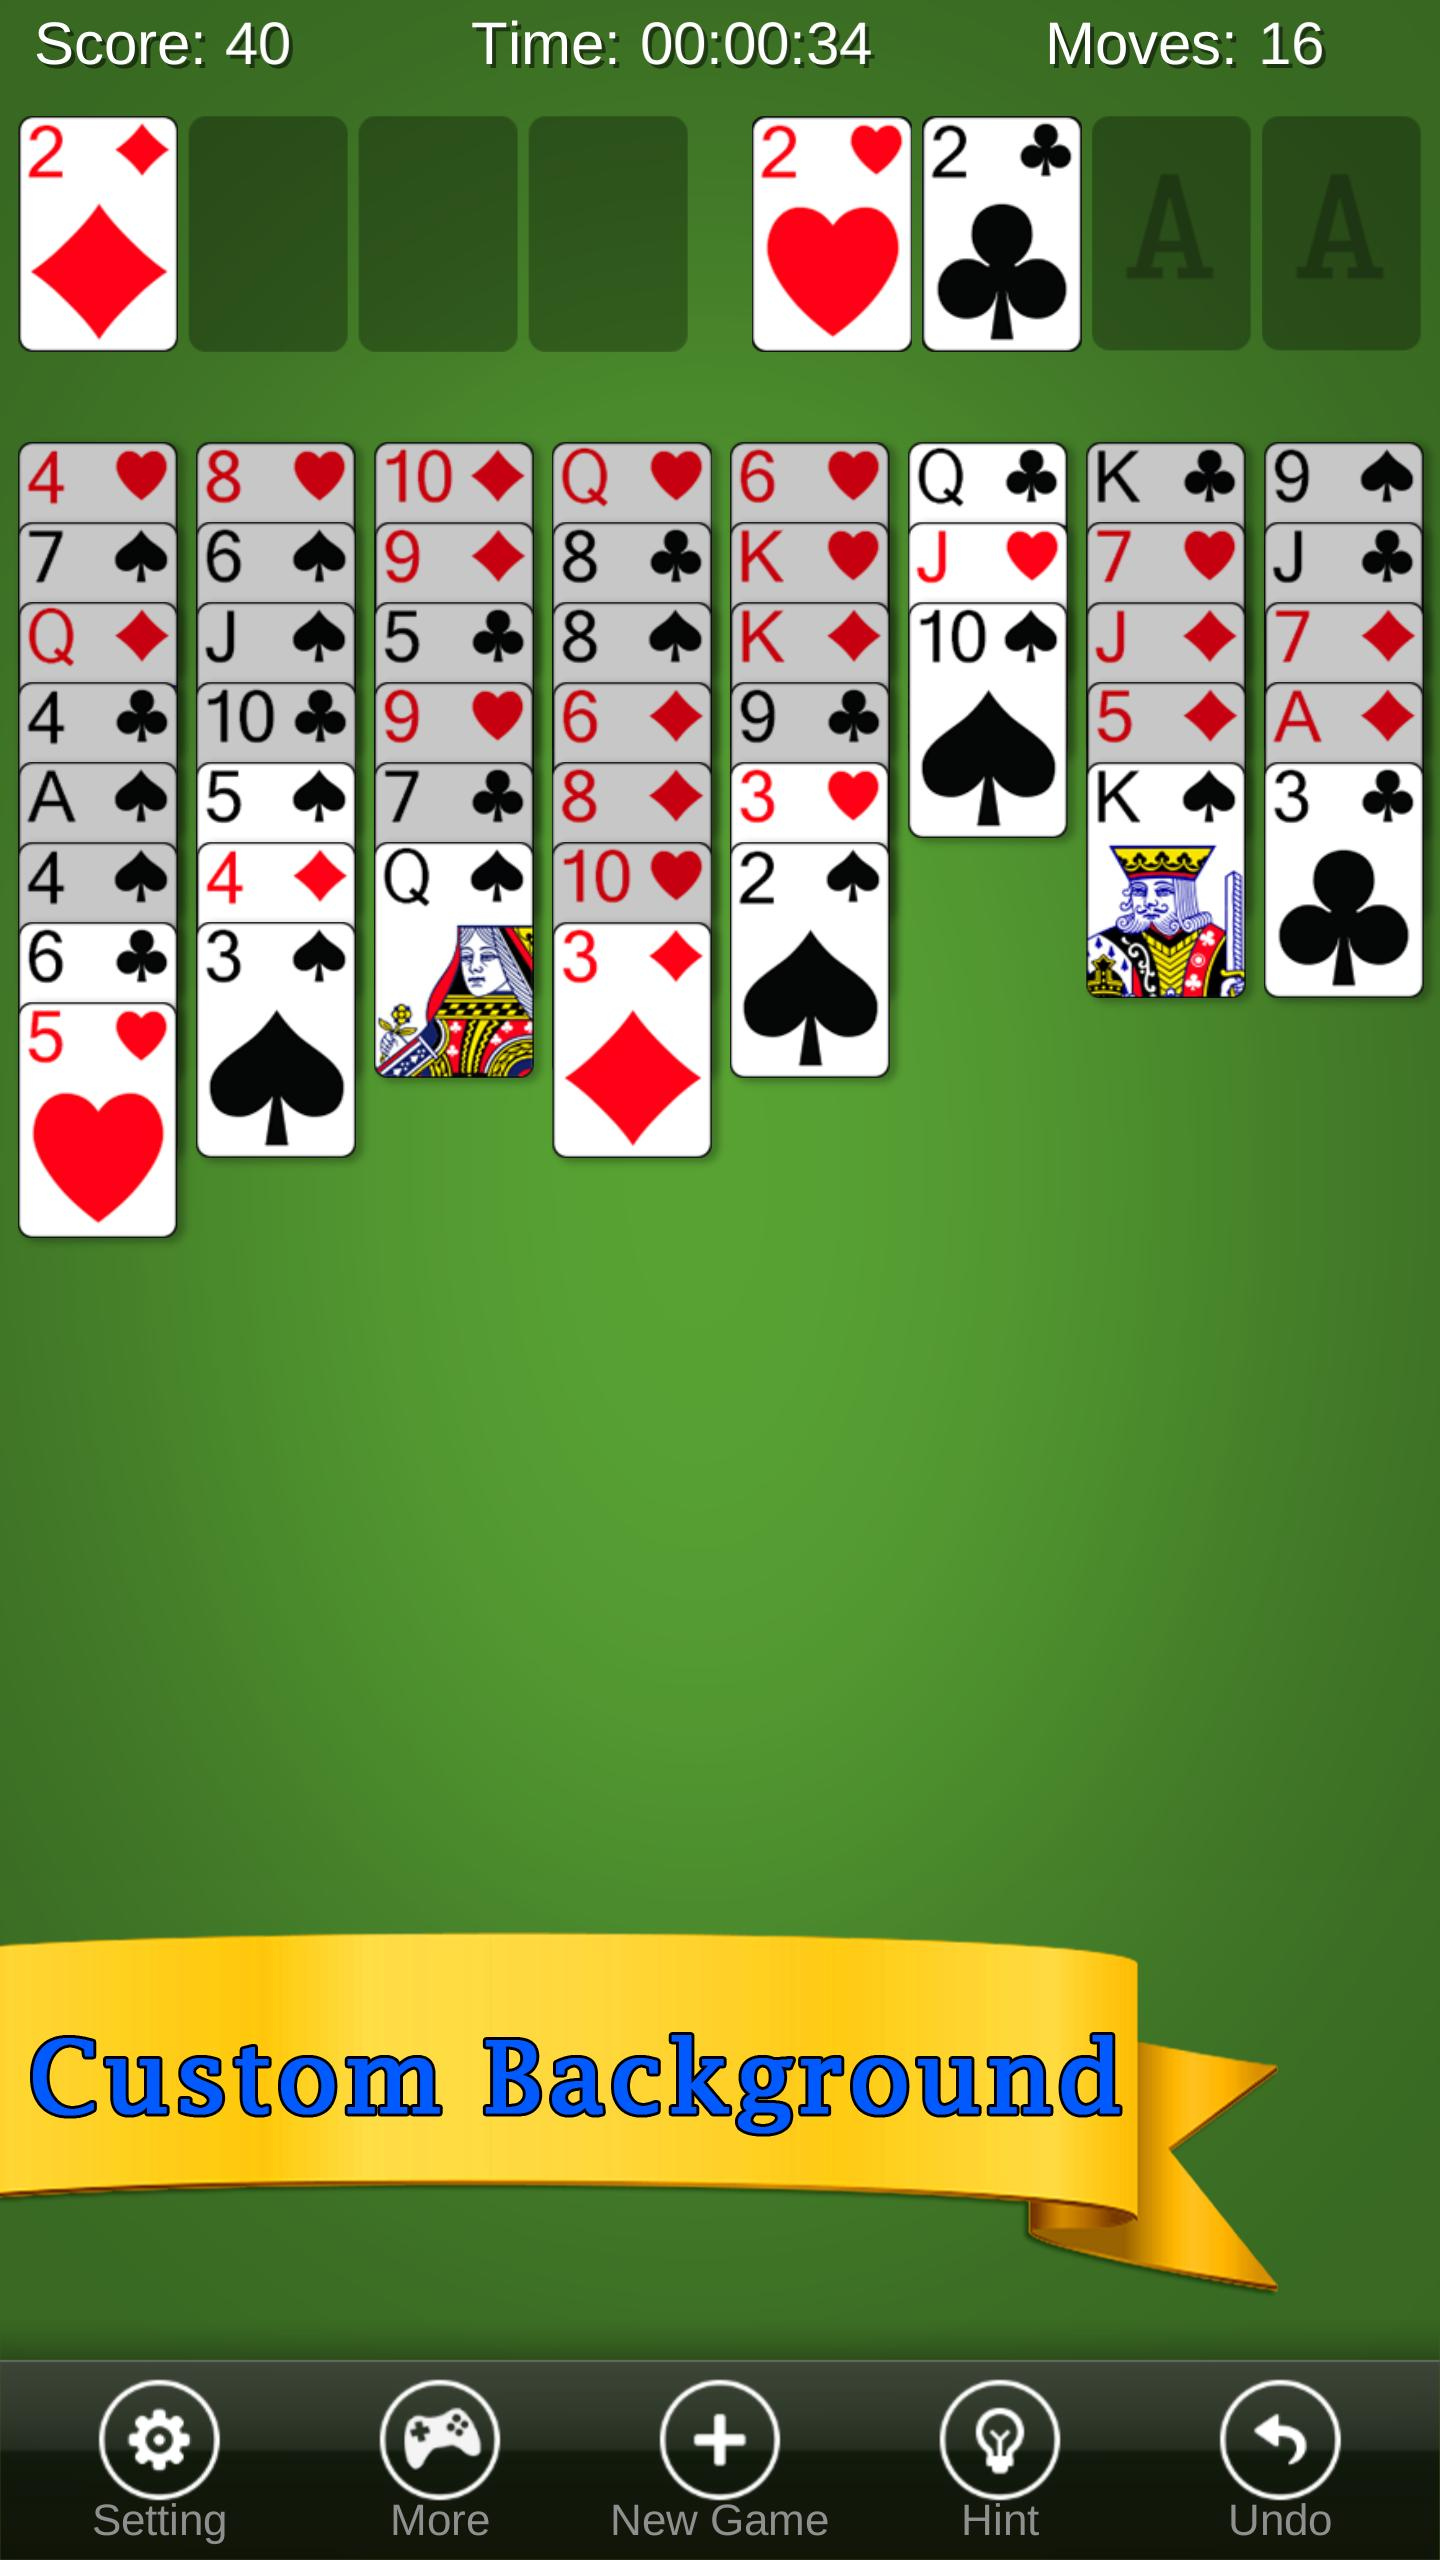 FreeCell Solitaire Pro